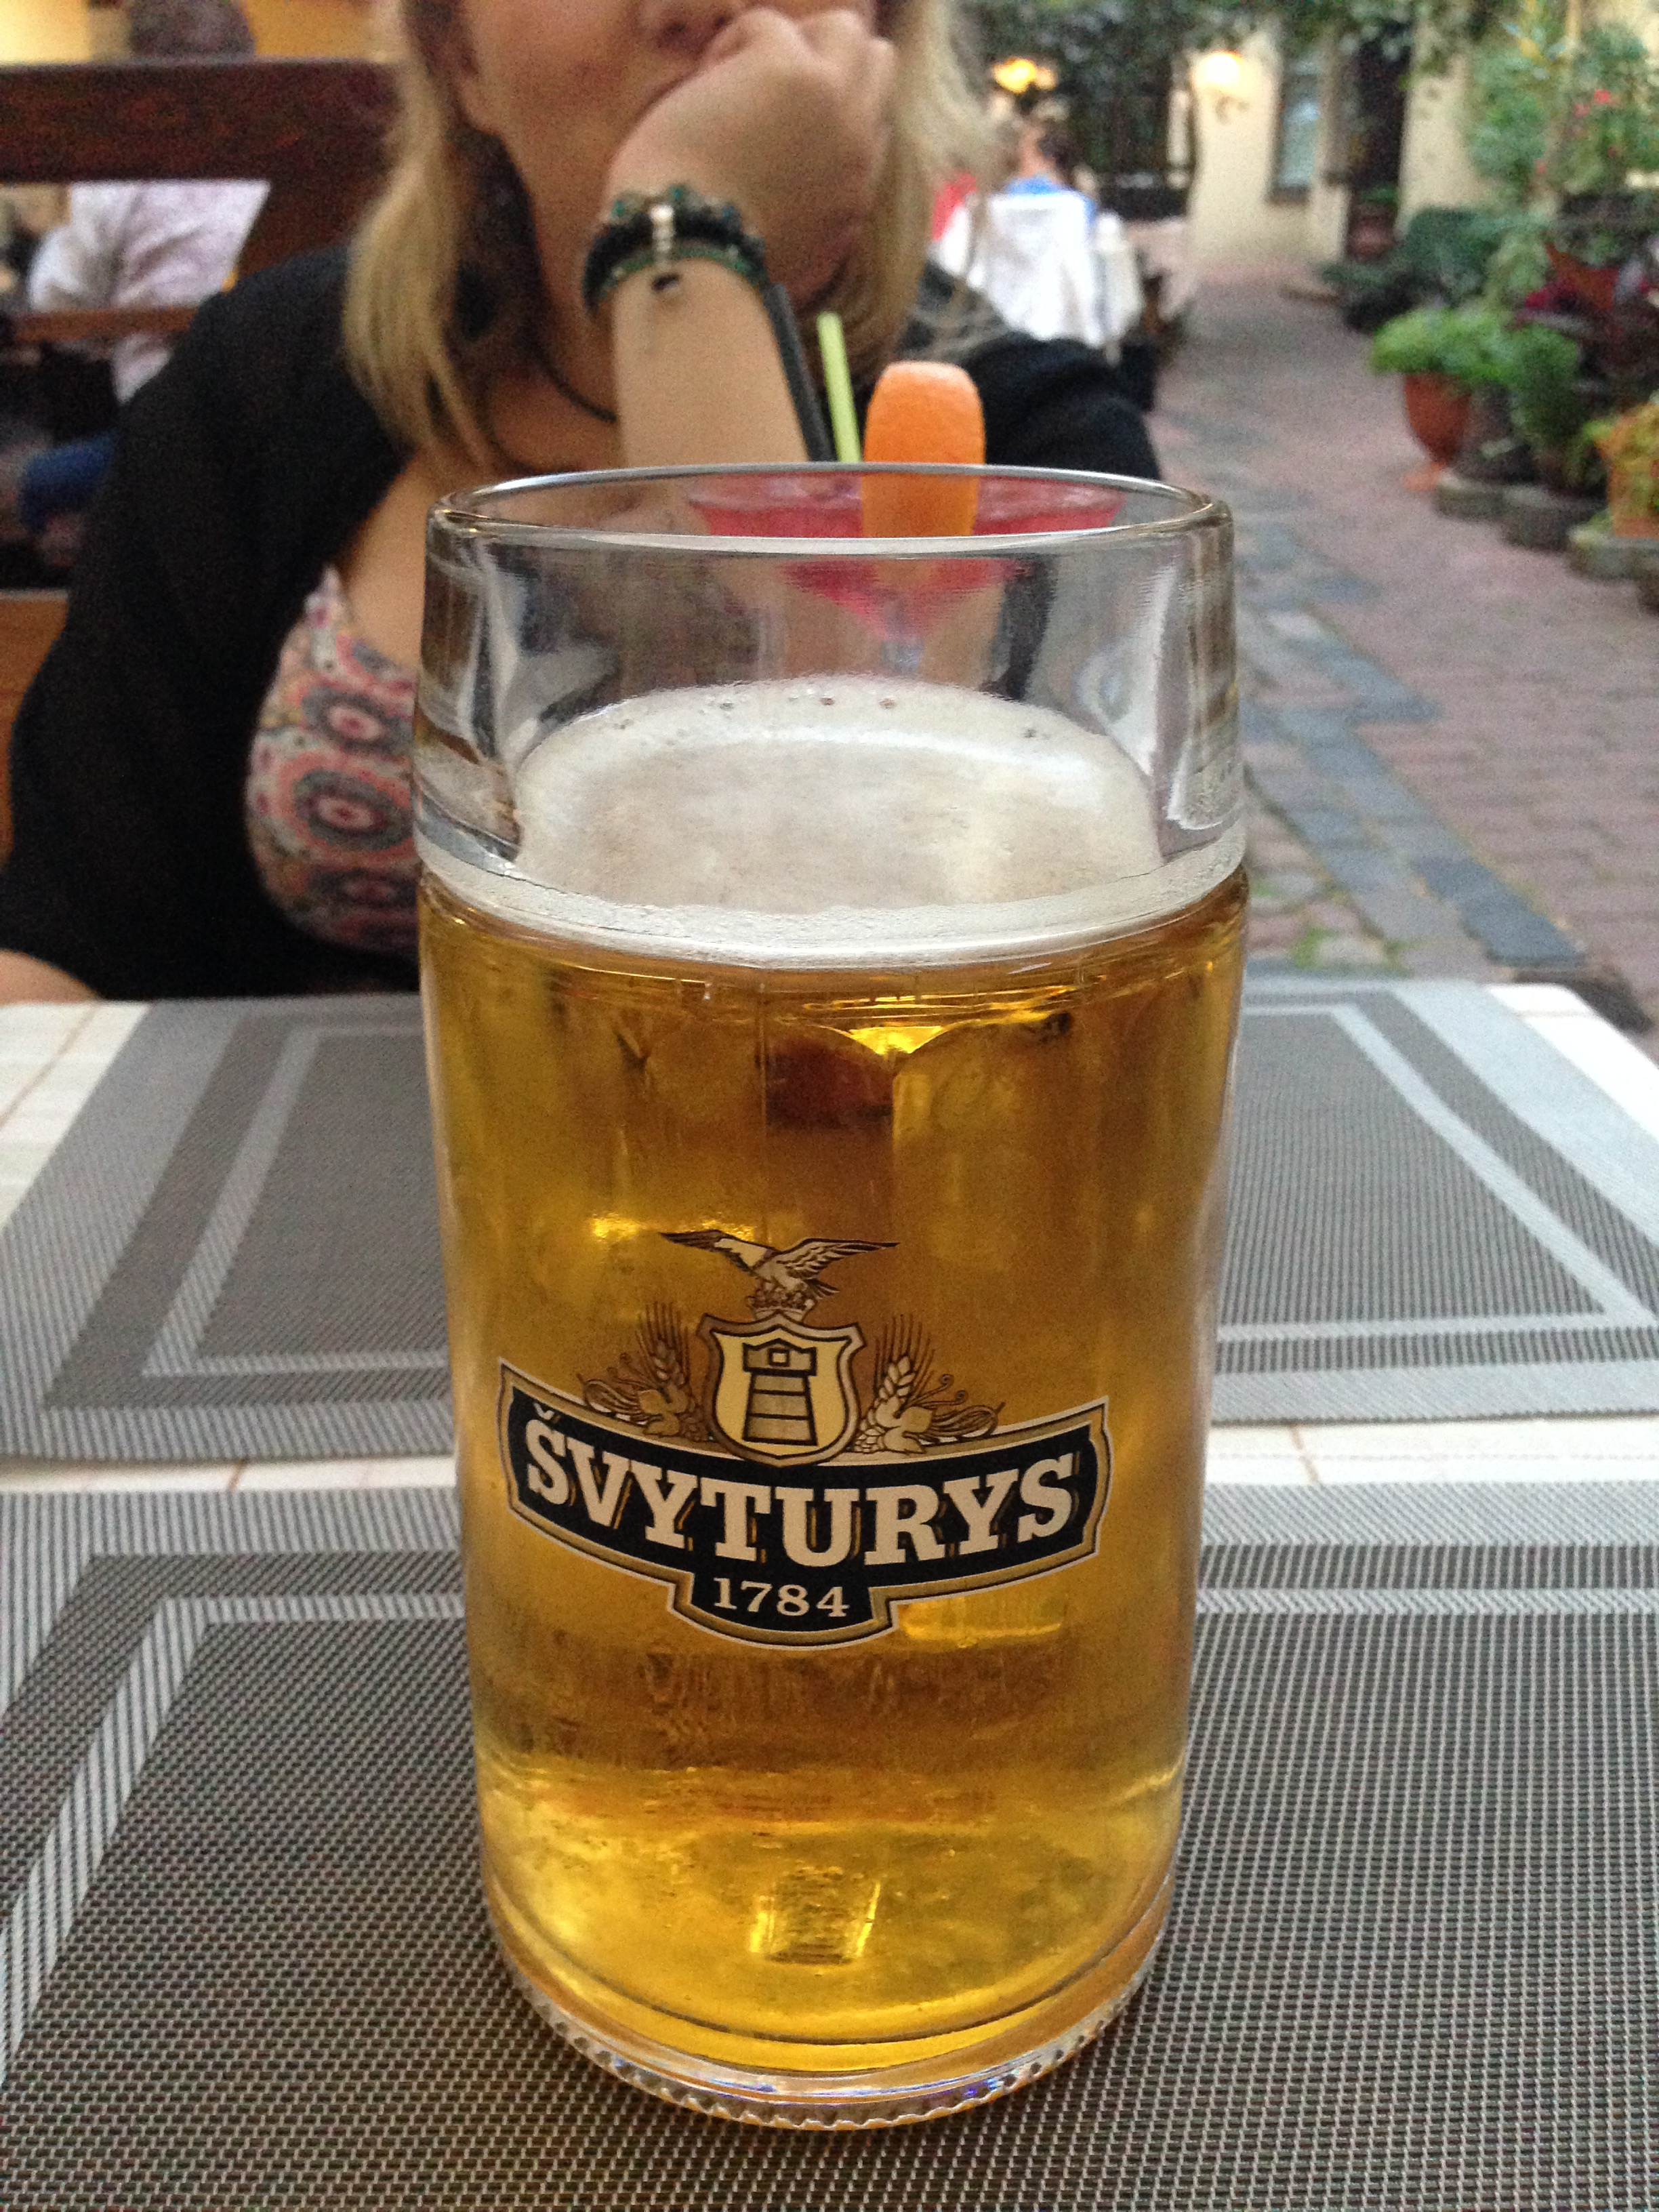 This cheap stein of Svyturys went down especially well after finding out its price.